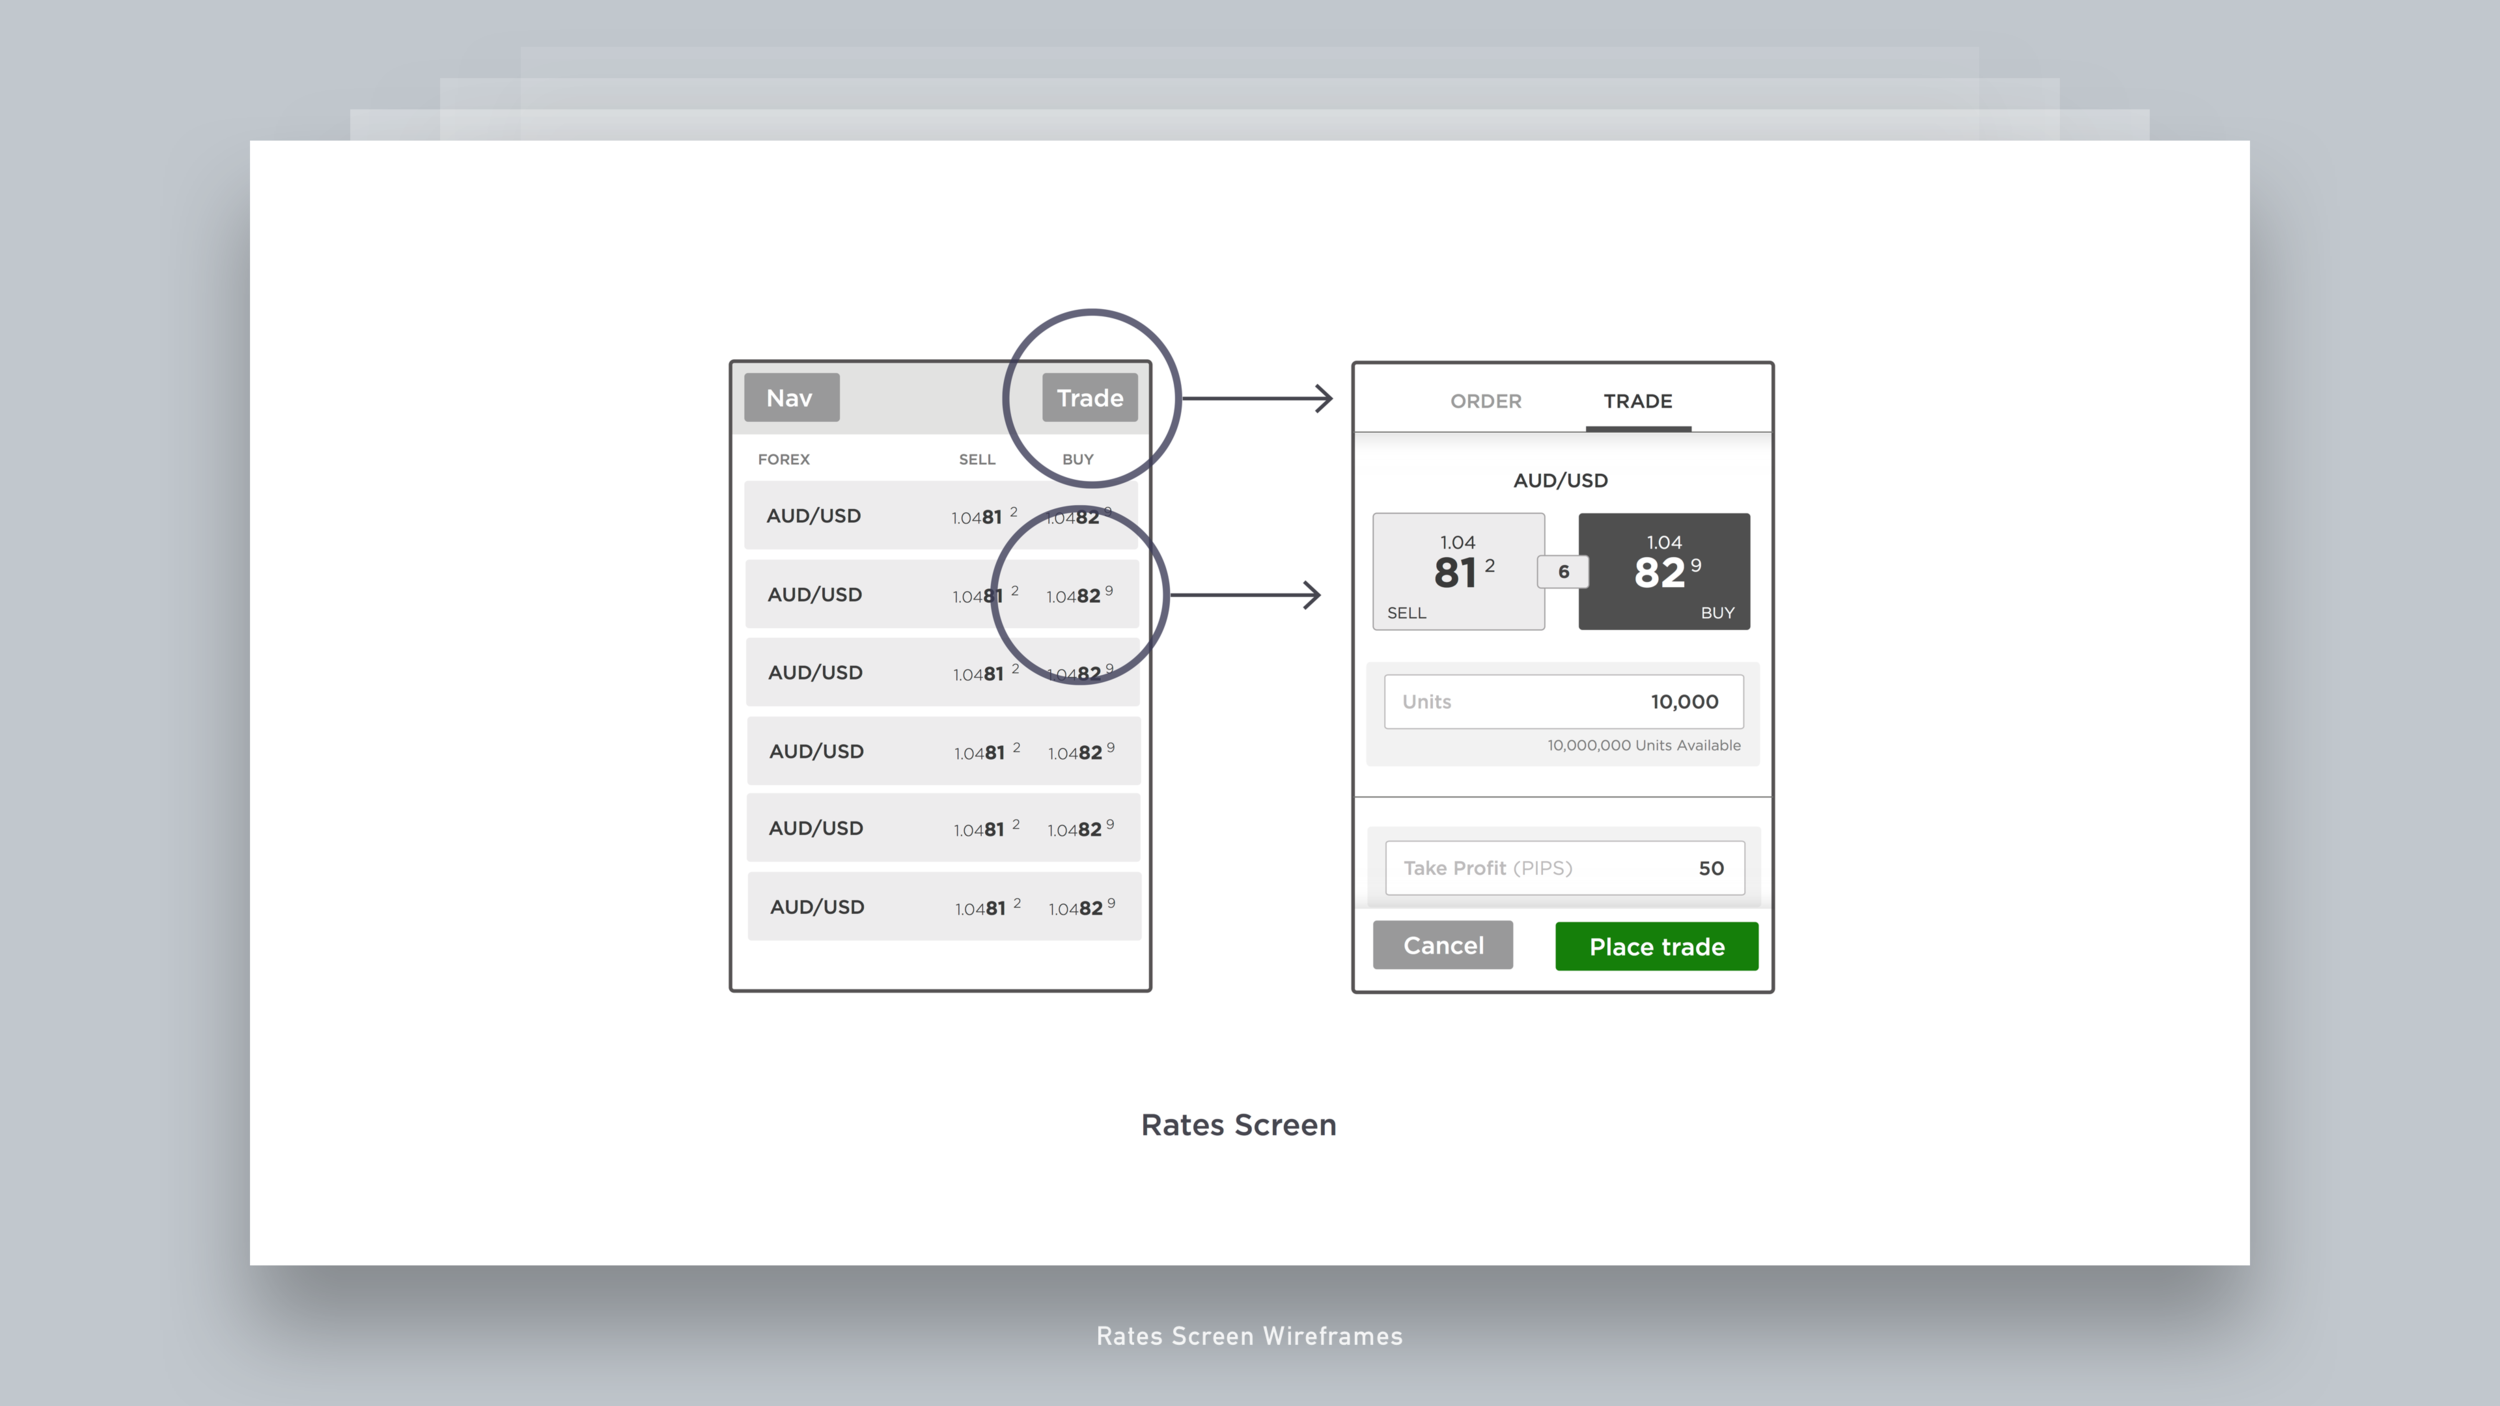 01 Rates Screen Wireframes - Forex Trading Platform.png